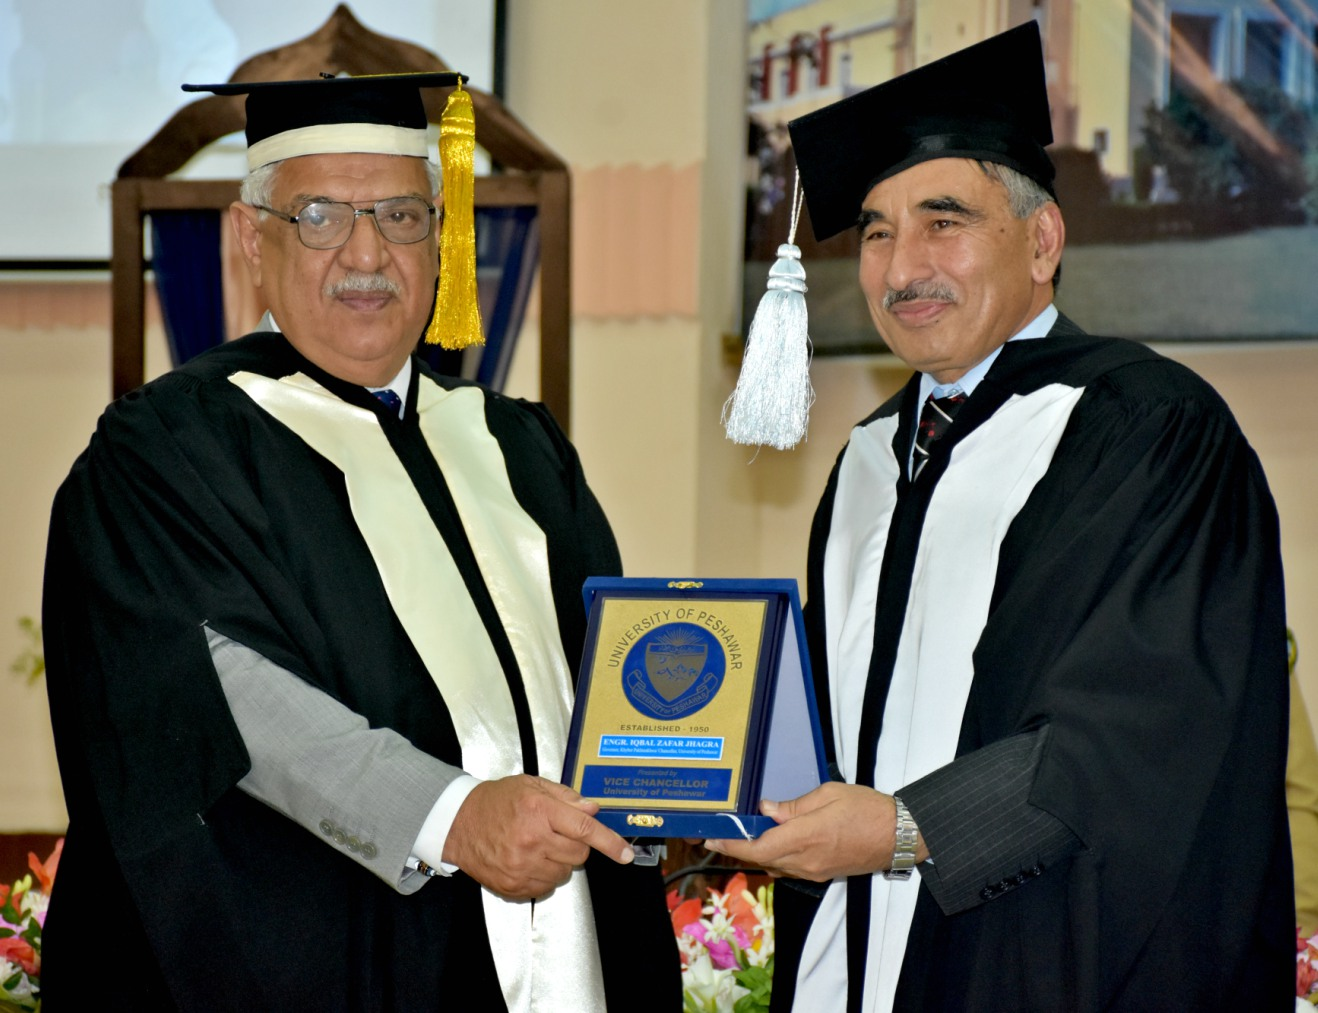 Vice Chancellor UoP Prof. Dr. Muhammad Rasul Jan presenting shield to Governor KP Iqbal Zafar Jhagra at the University of Peshawar Convocation 2016